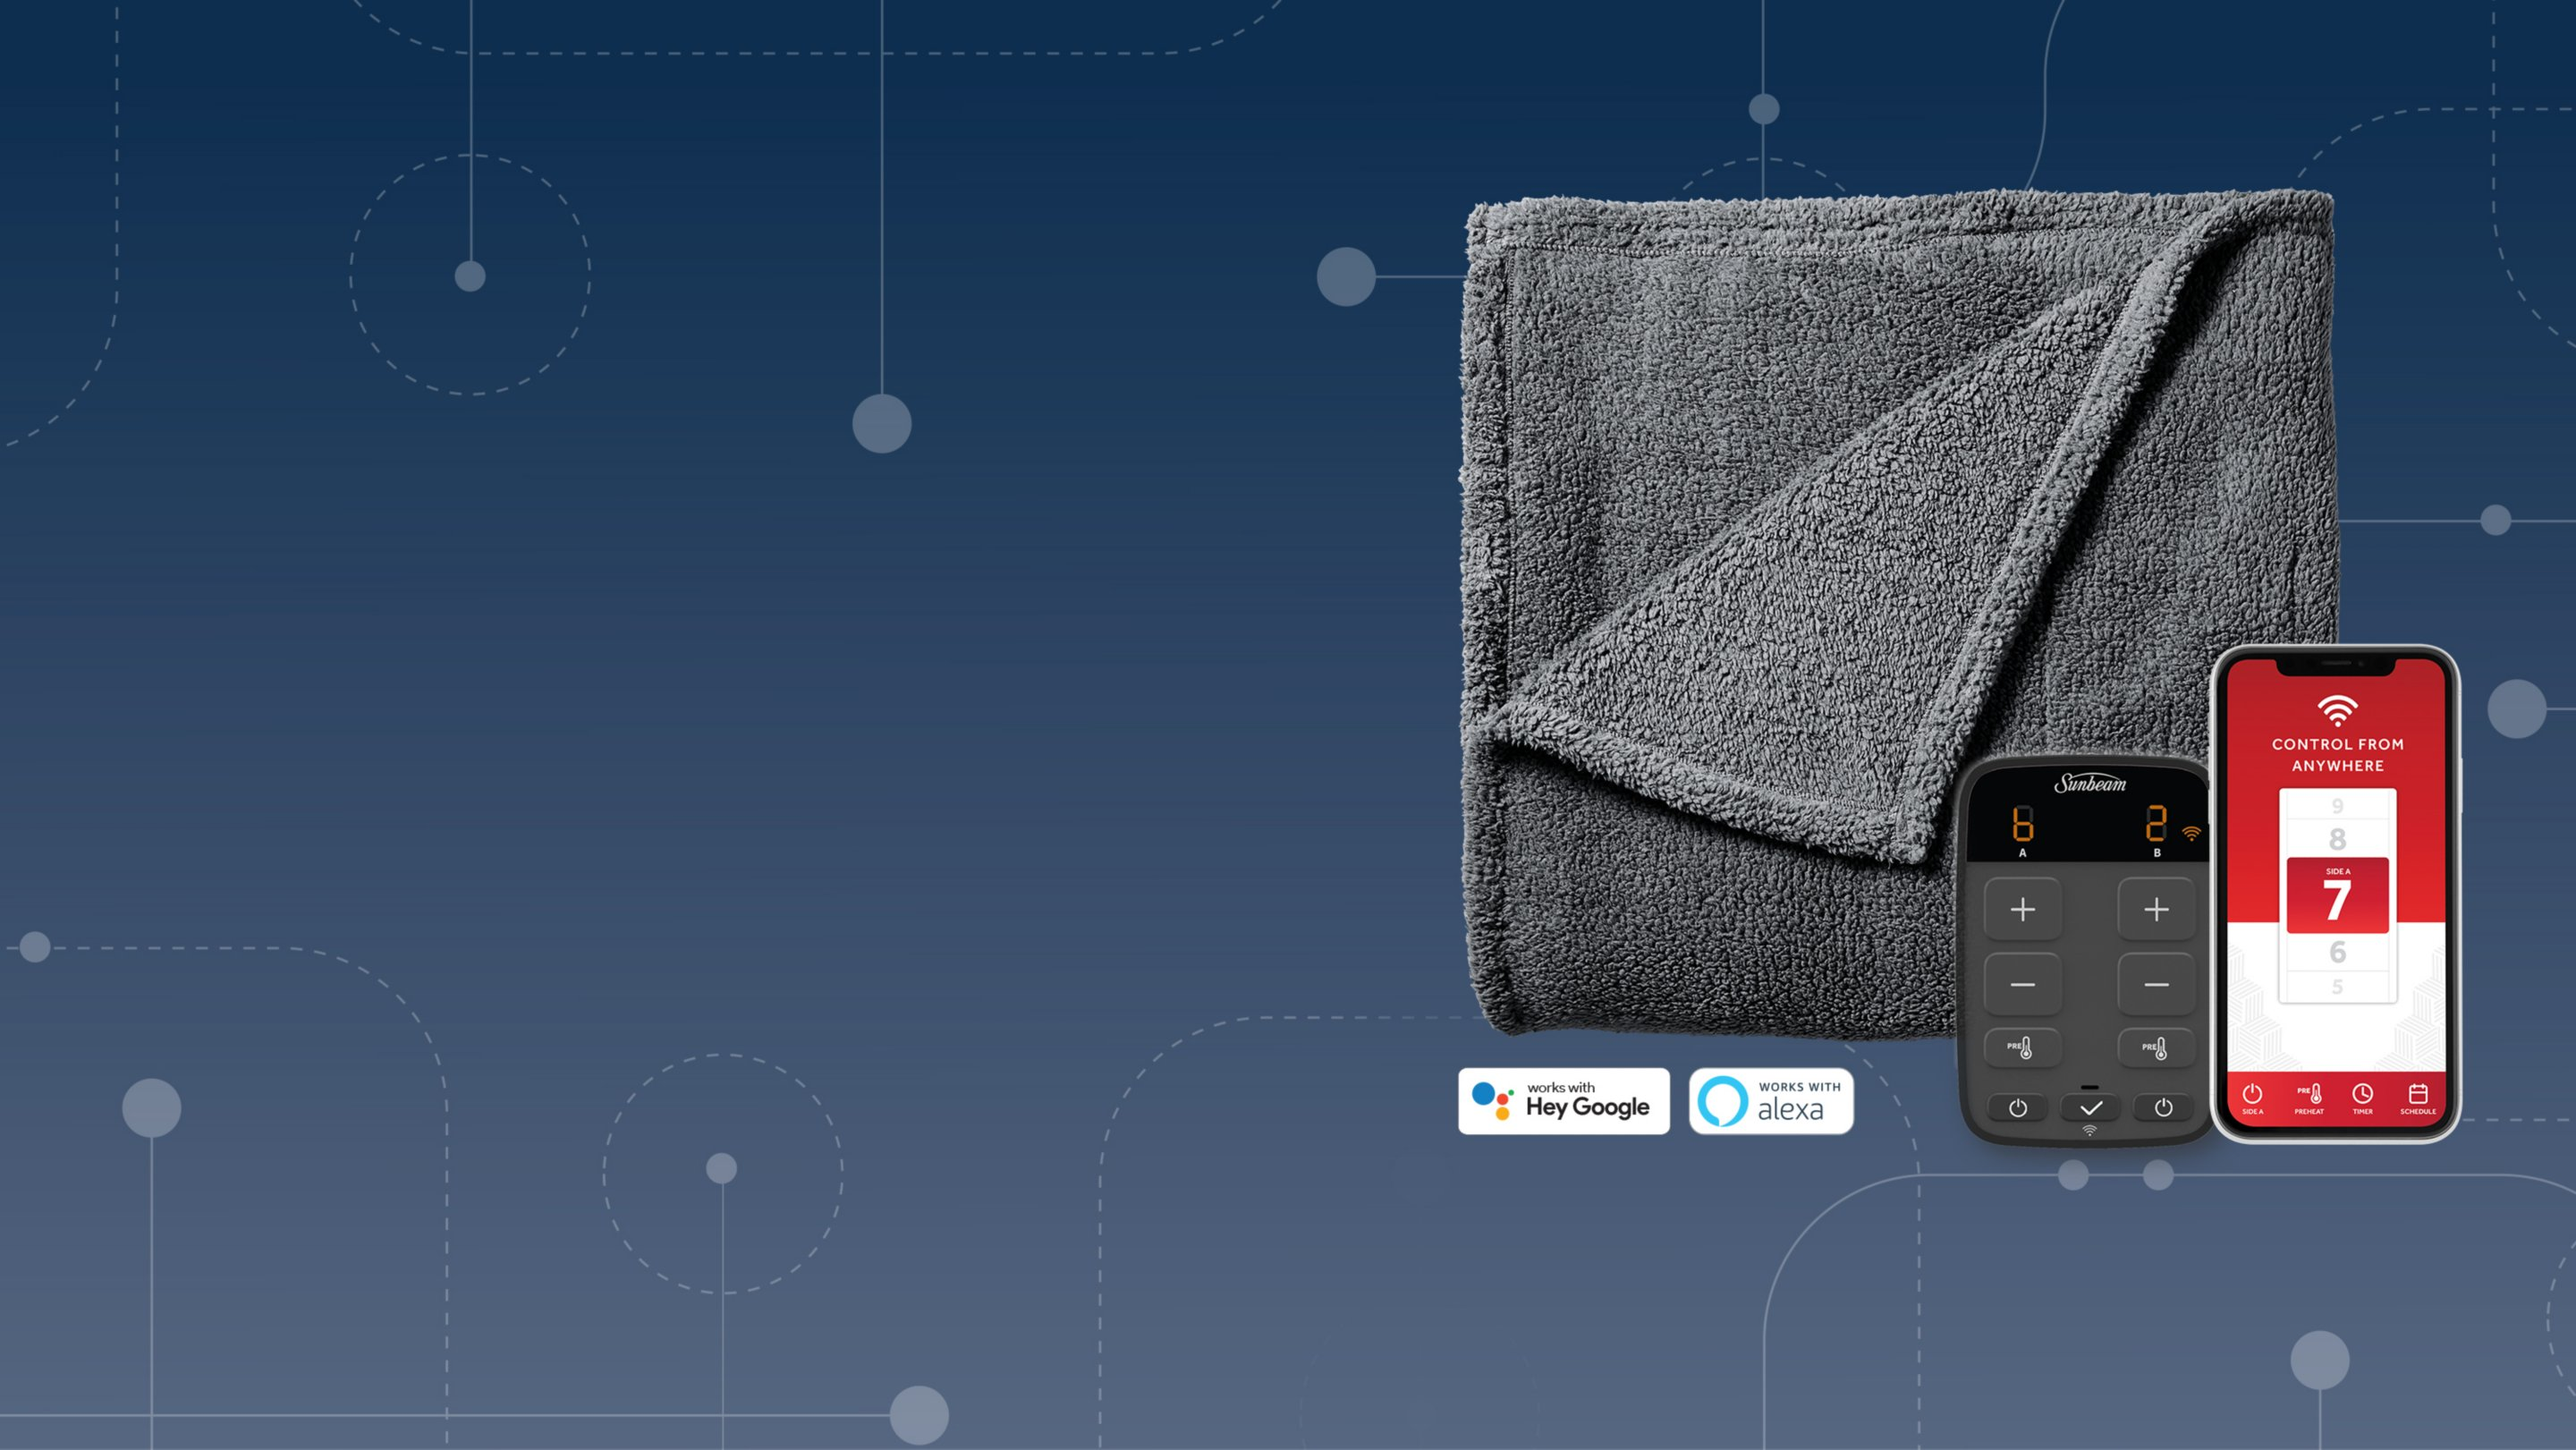 smart app controls for heated blanket